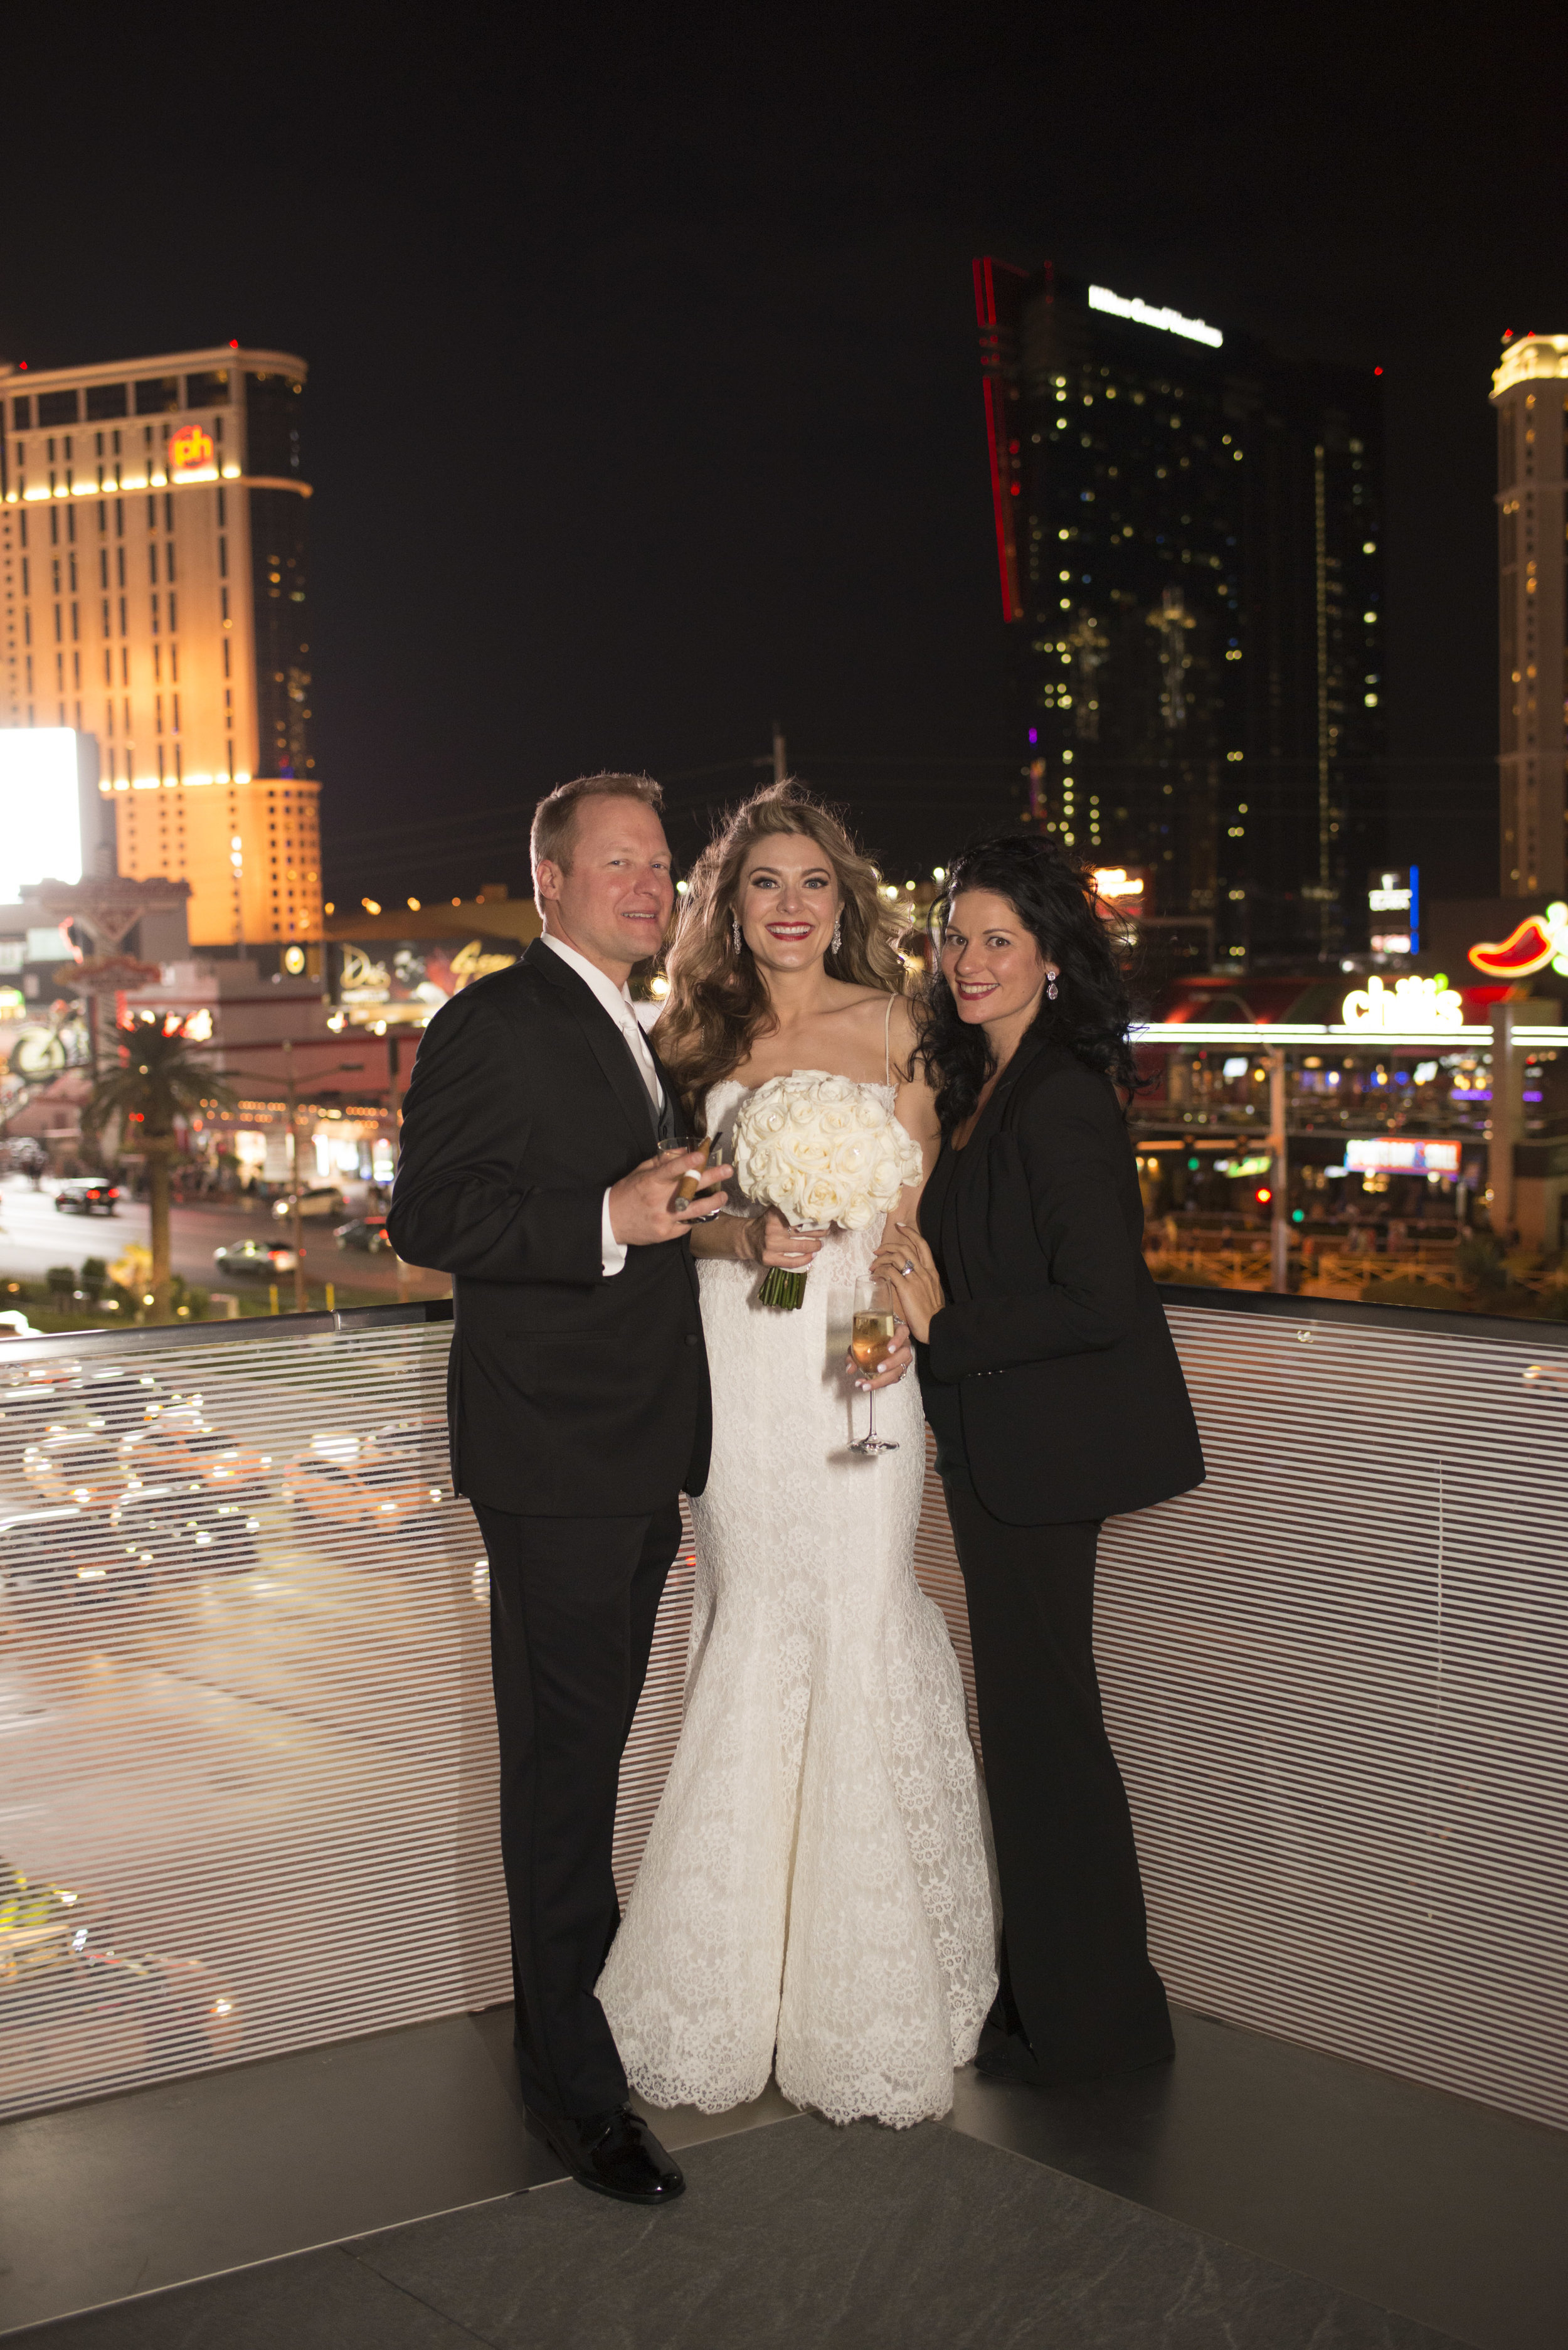 Las V  egas   Wedding Planner Andrea Eppolito with bride and groom at Mandarin Oriental  .   Image by AltF.